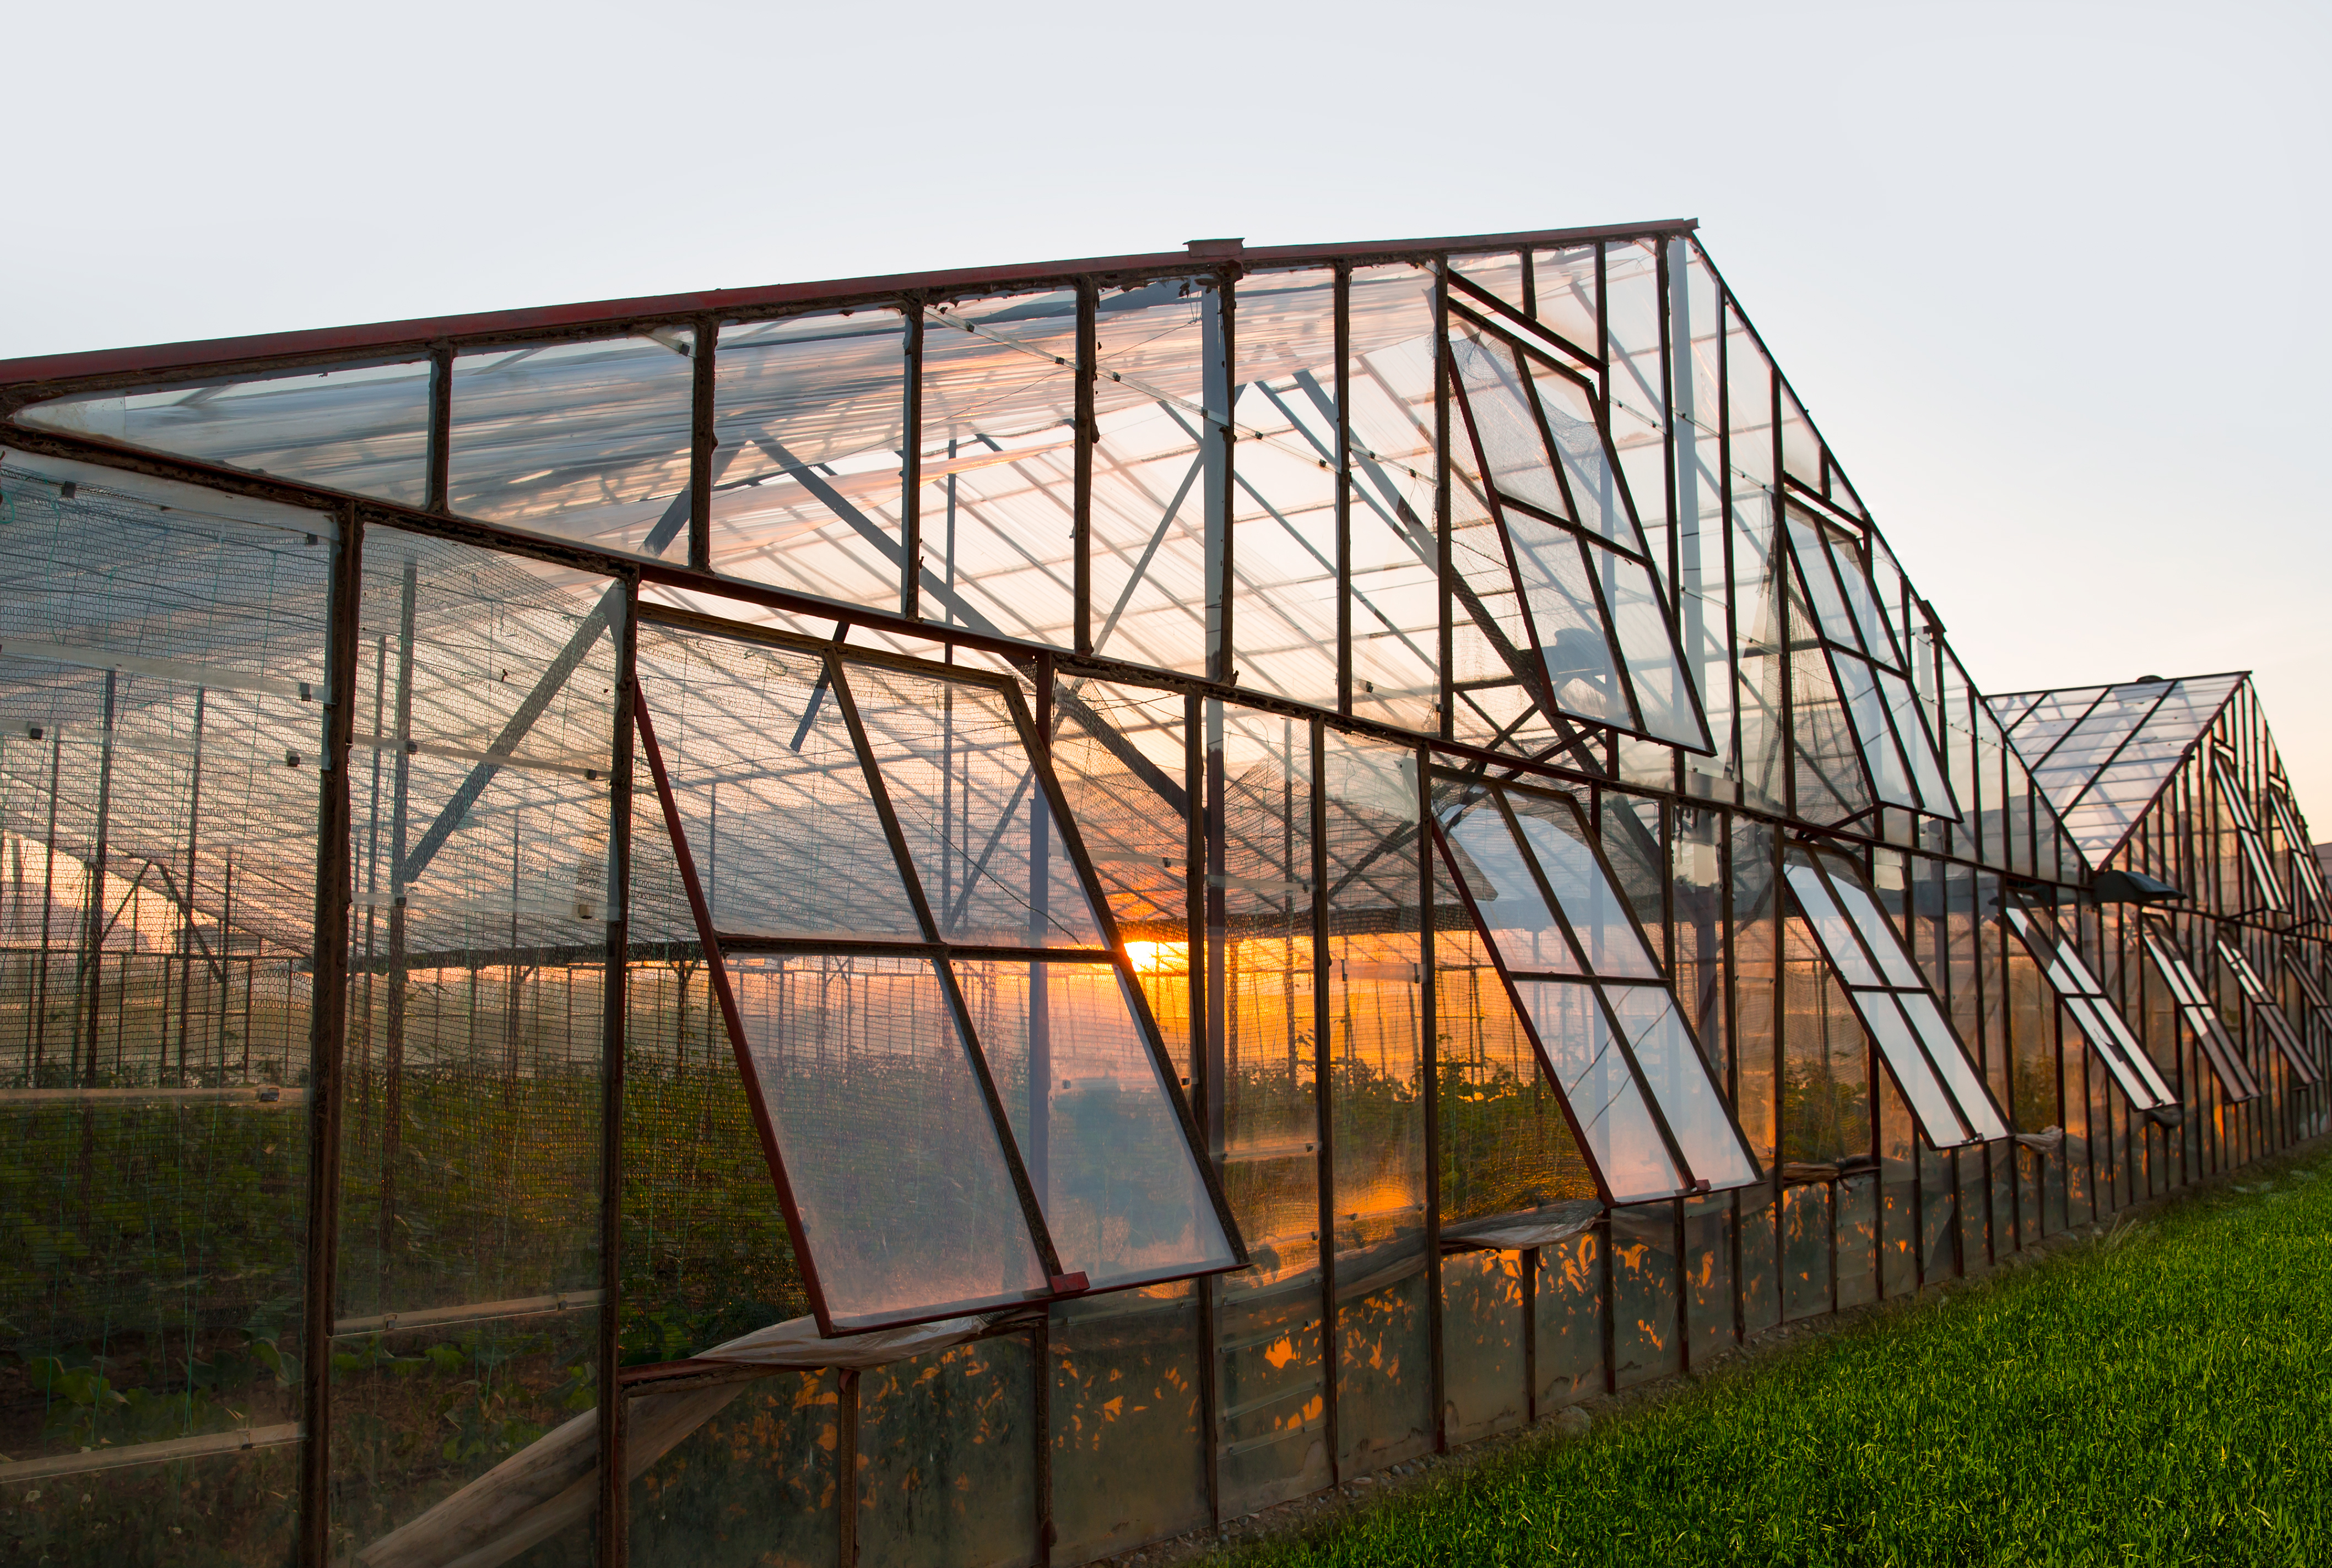 industrial greenhouse shutterstock_230468560